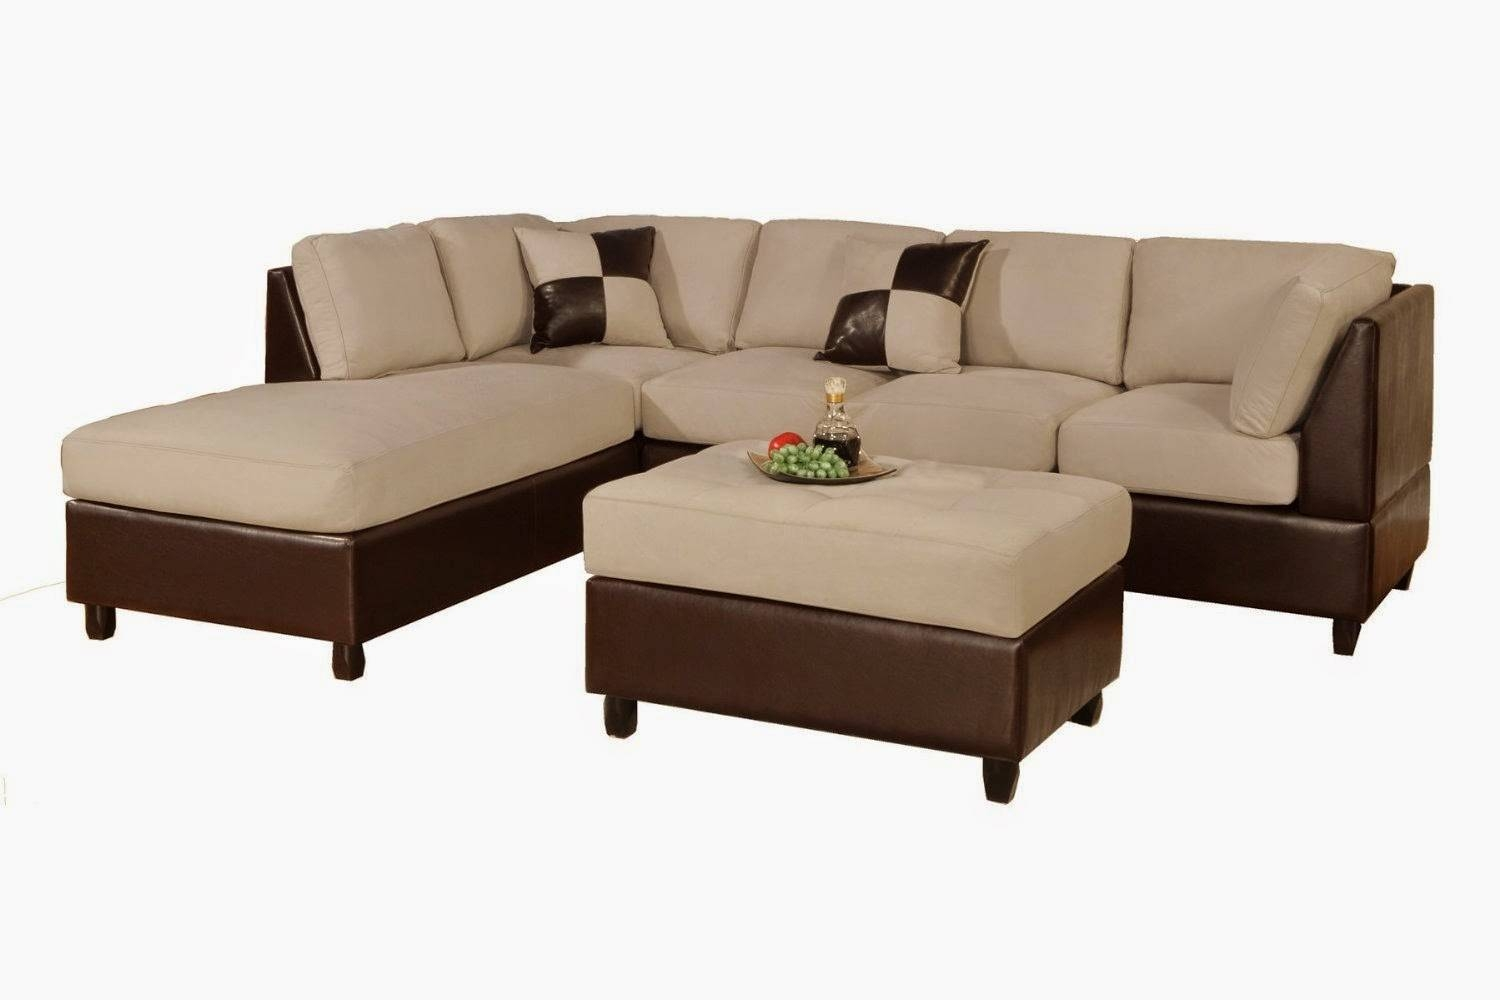 L Shaped Couches | Home Designlarizza regarding Small L-Shaped Sectional Sofas (Image 9 of 15)